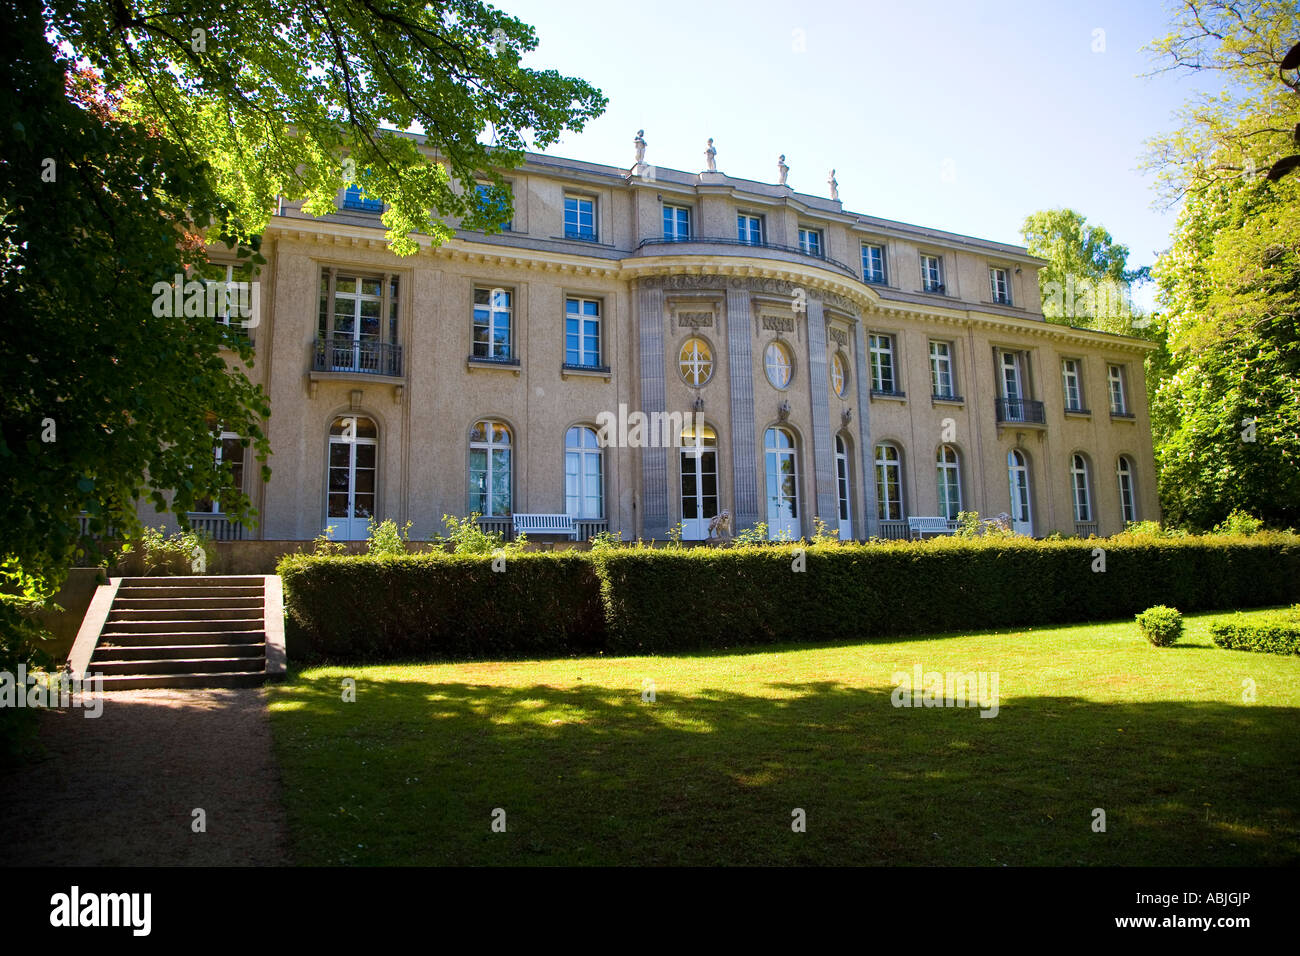 House of the wannsee conference berlin germany